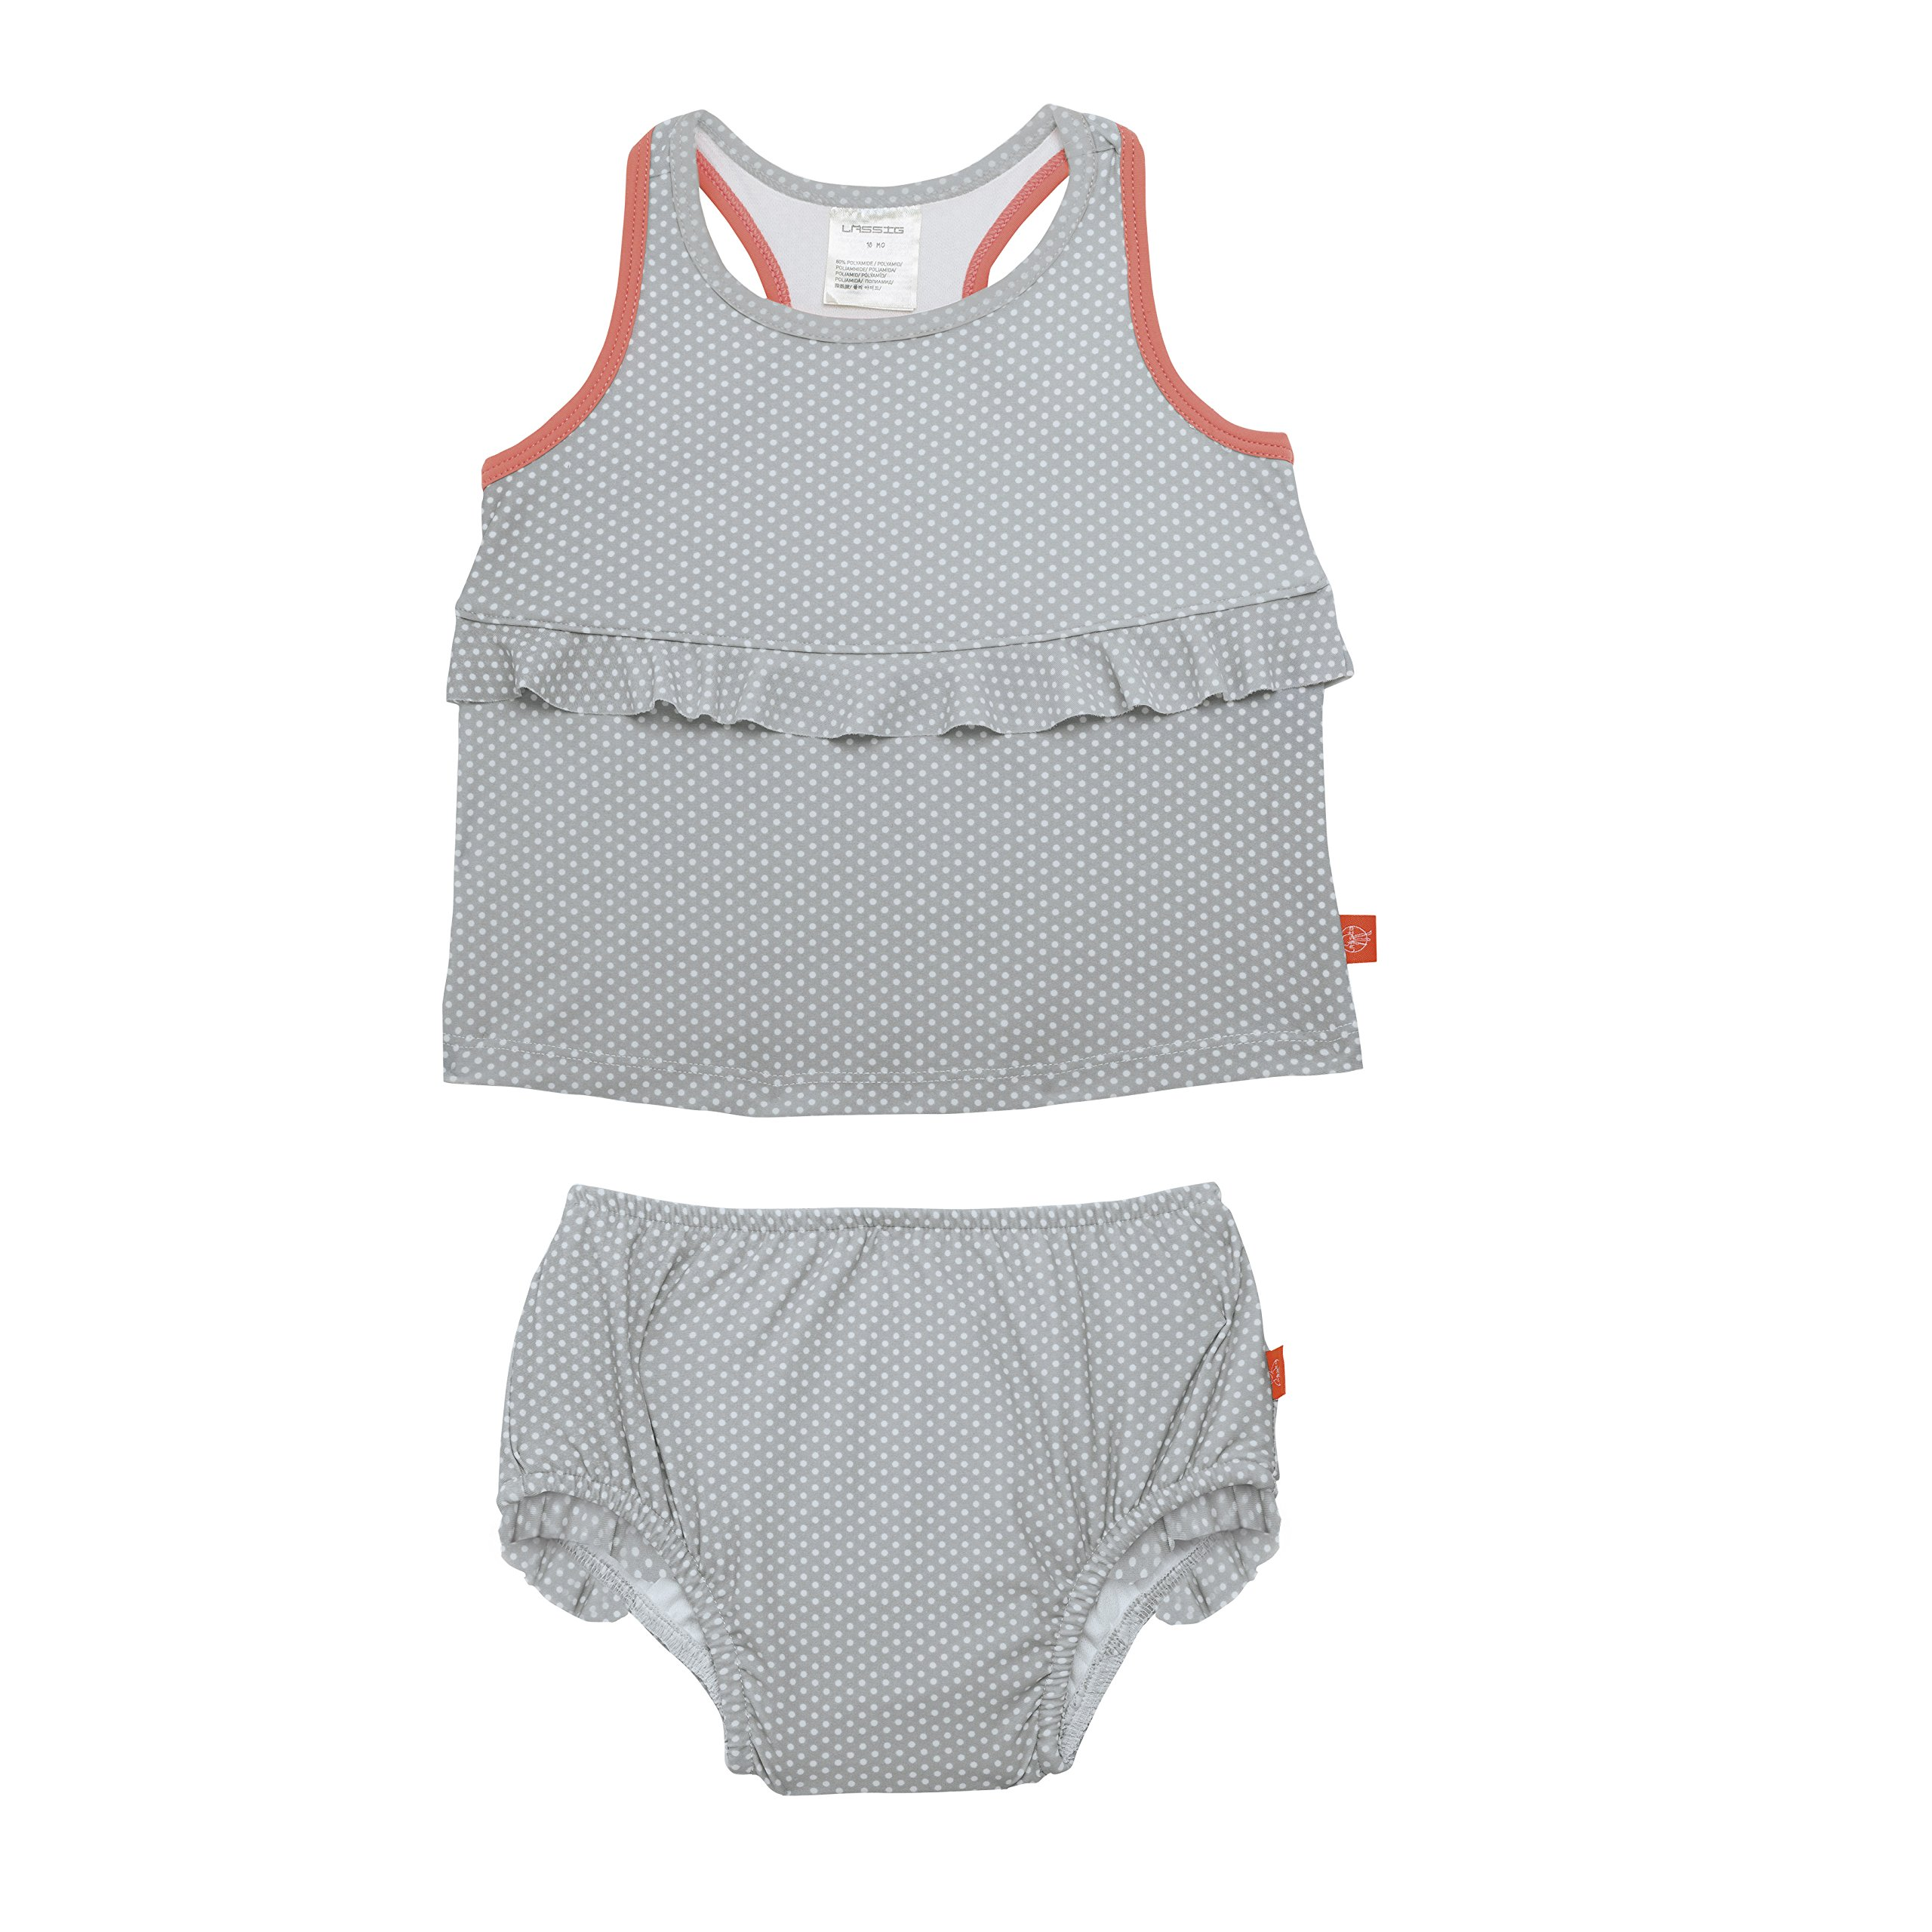 Lassig 2pc Tankini Set - Polka Dots Grey 3 yrs. by Lassig